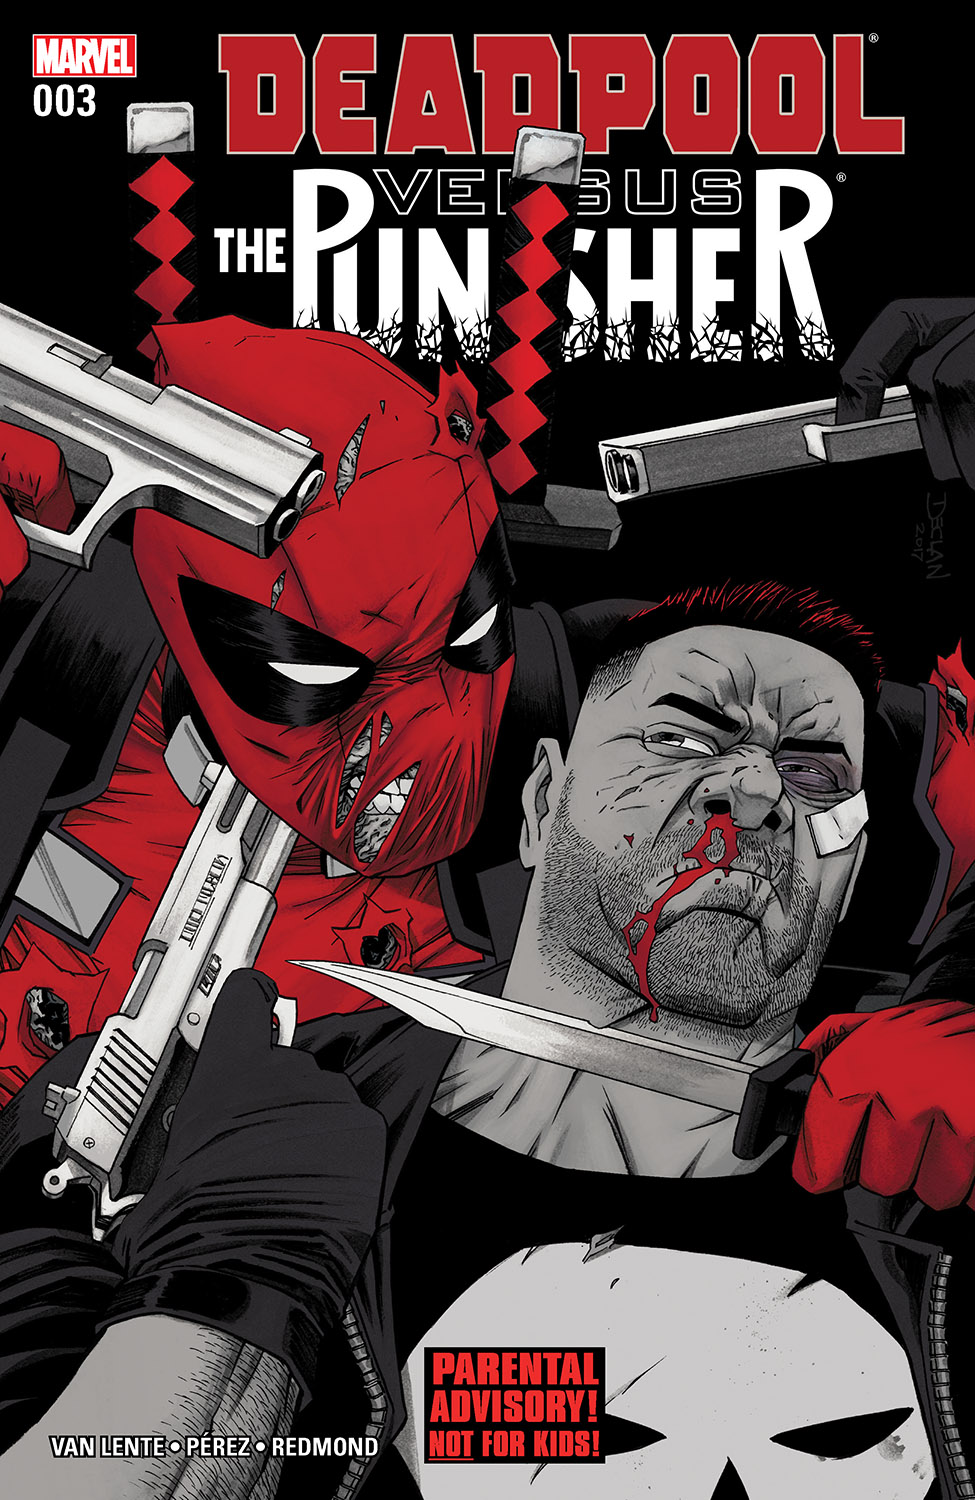 Deadpool Vs. the Punisher (2017) #3